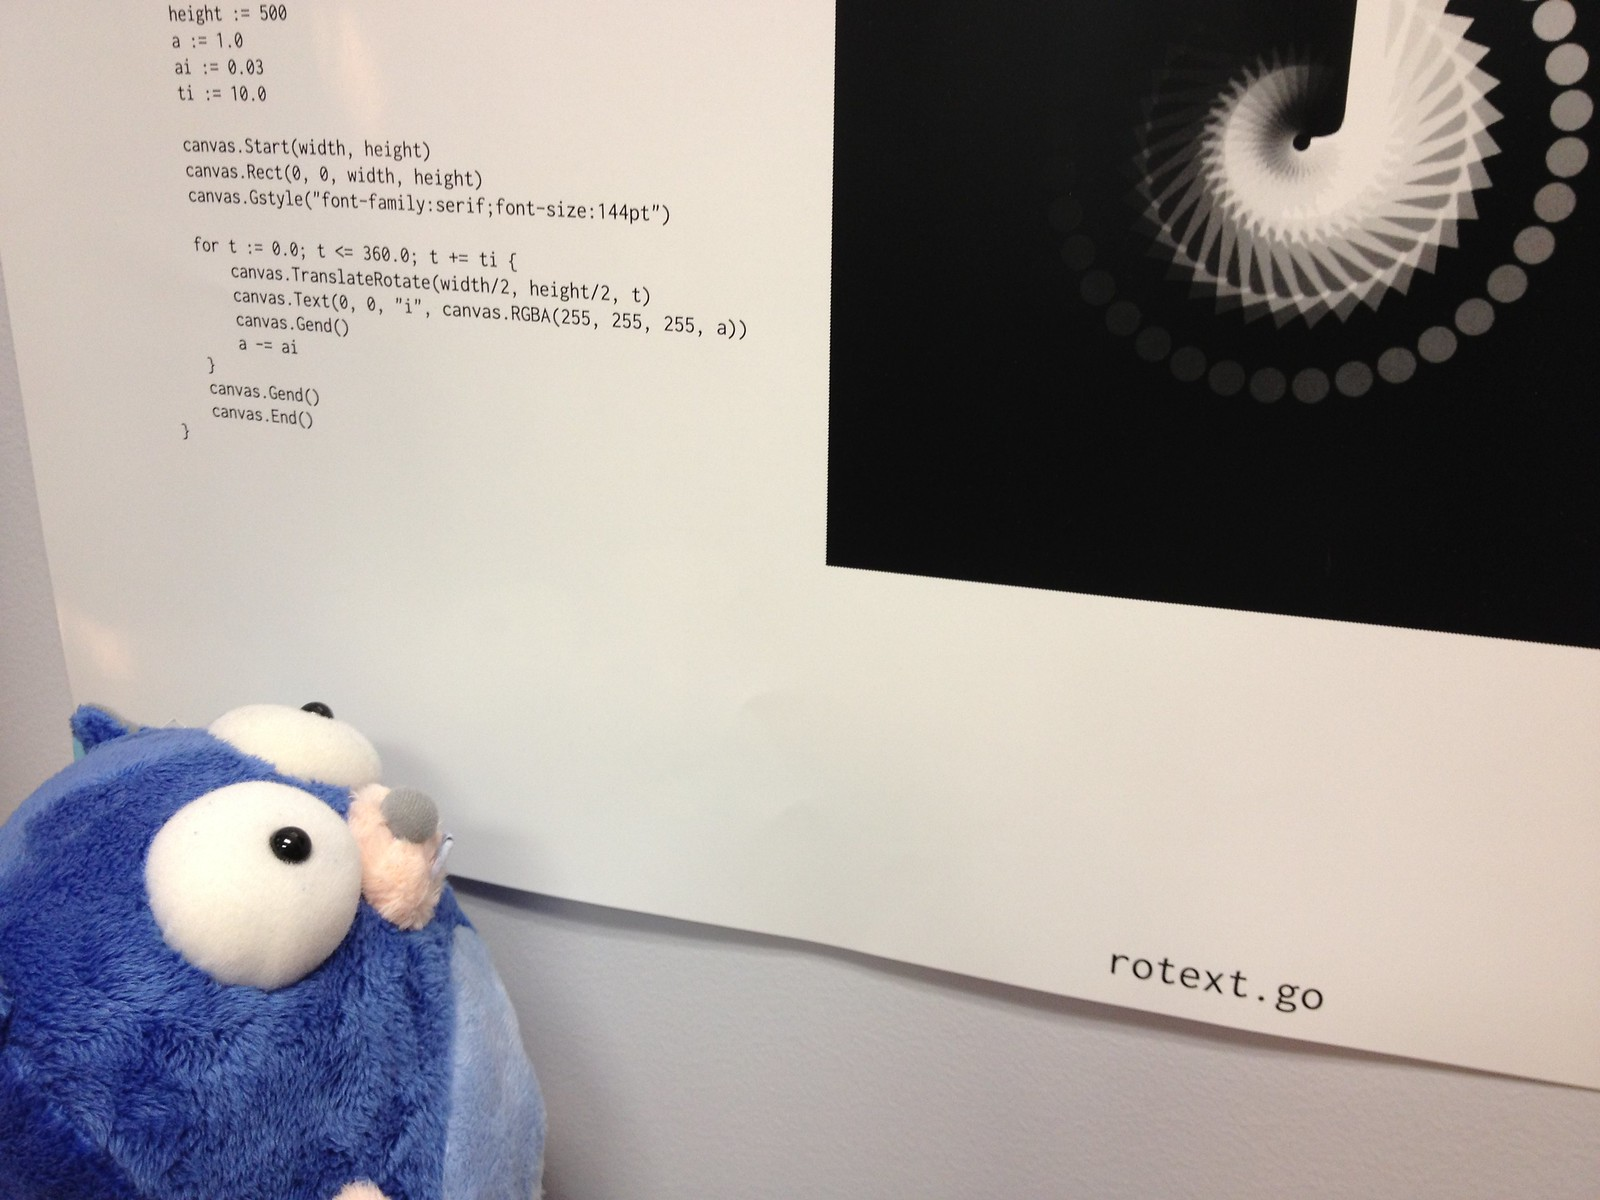 Gopher inspecting Go code